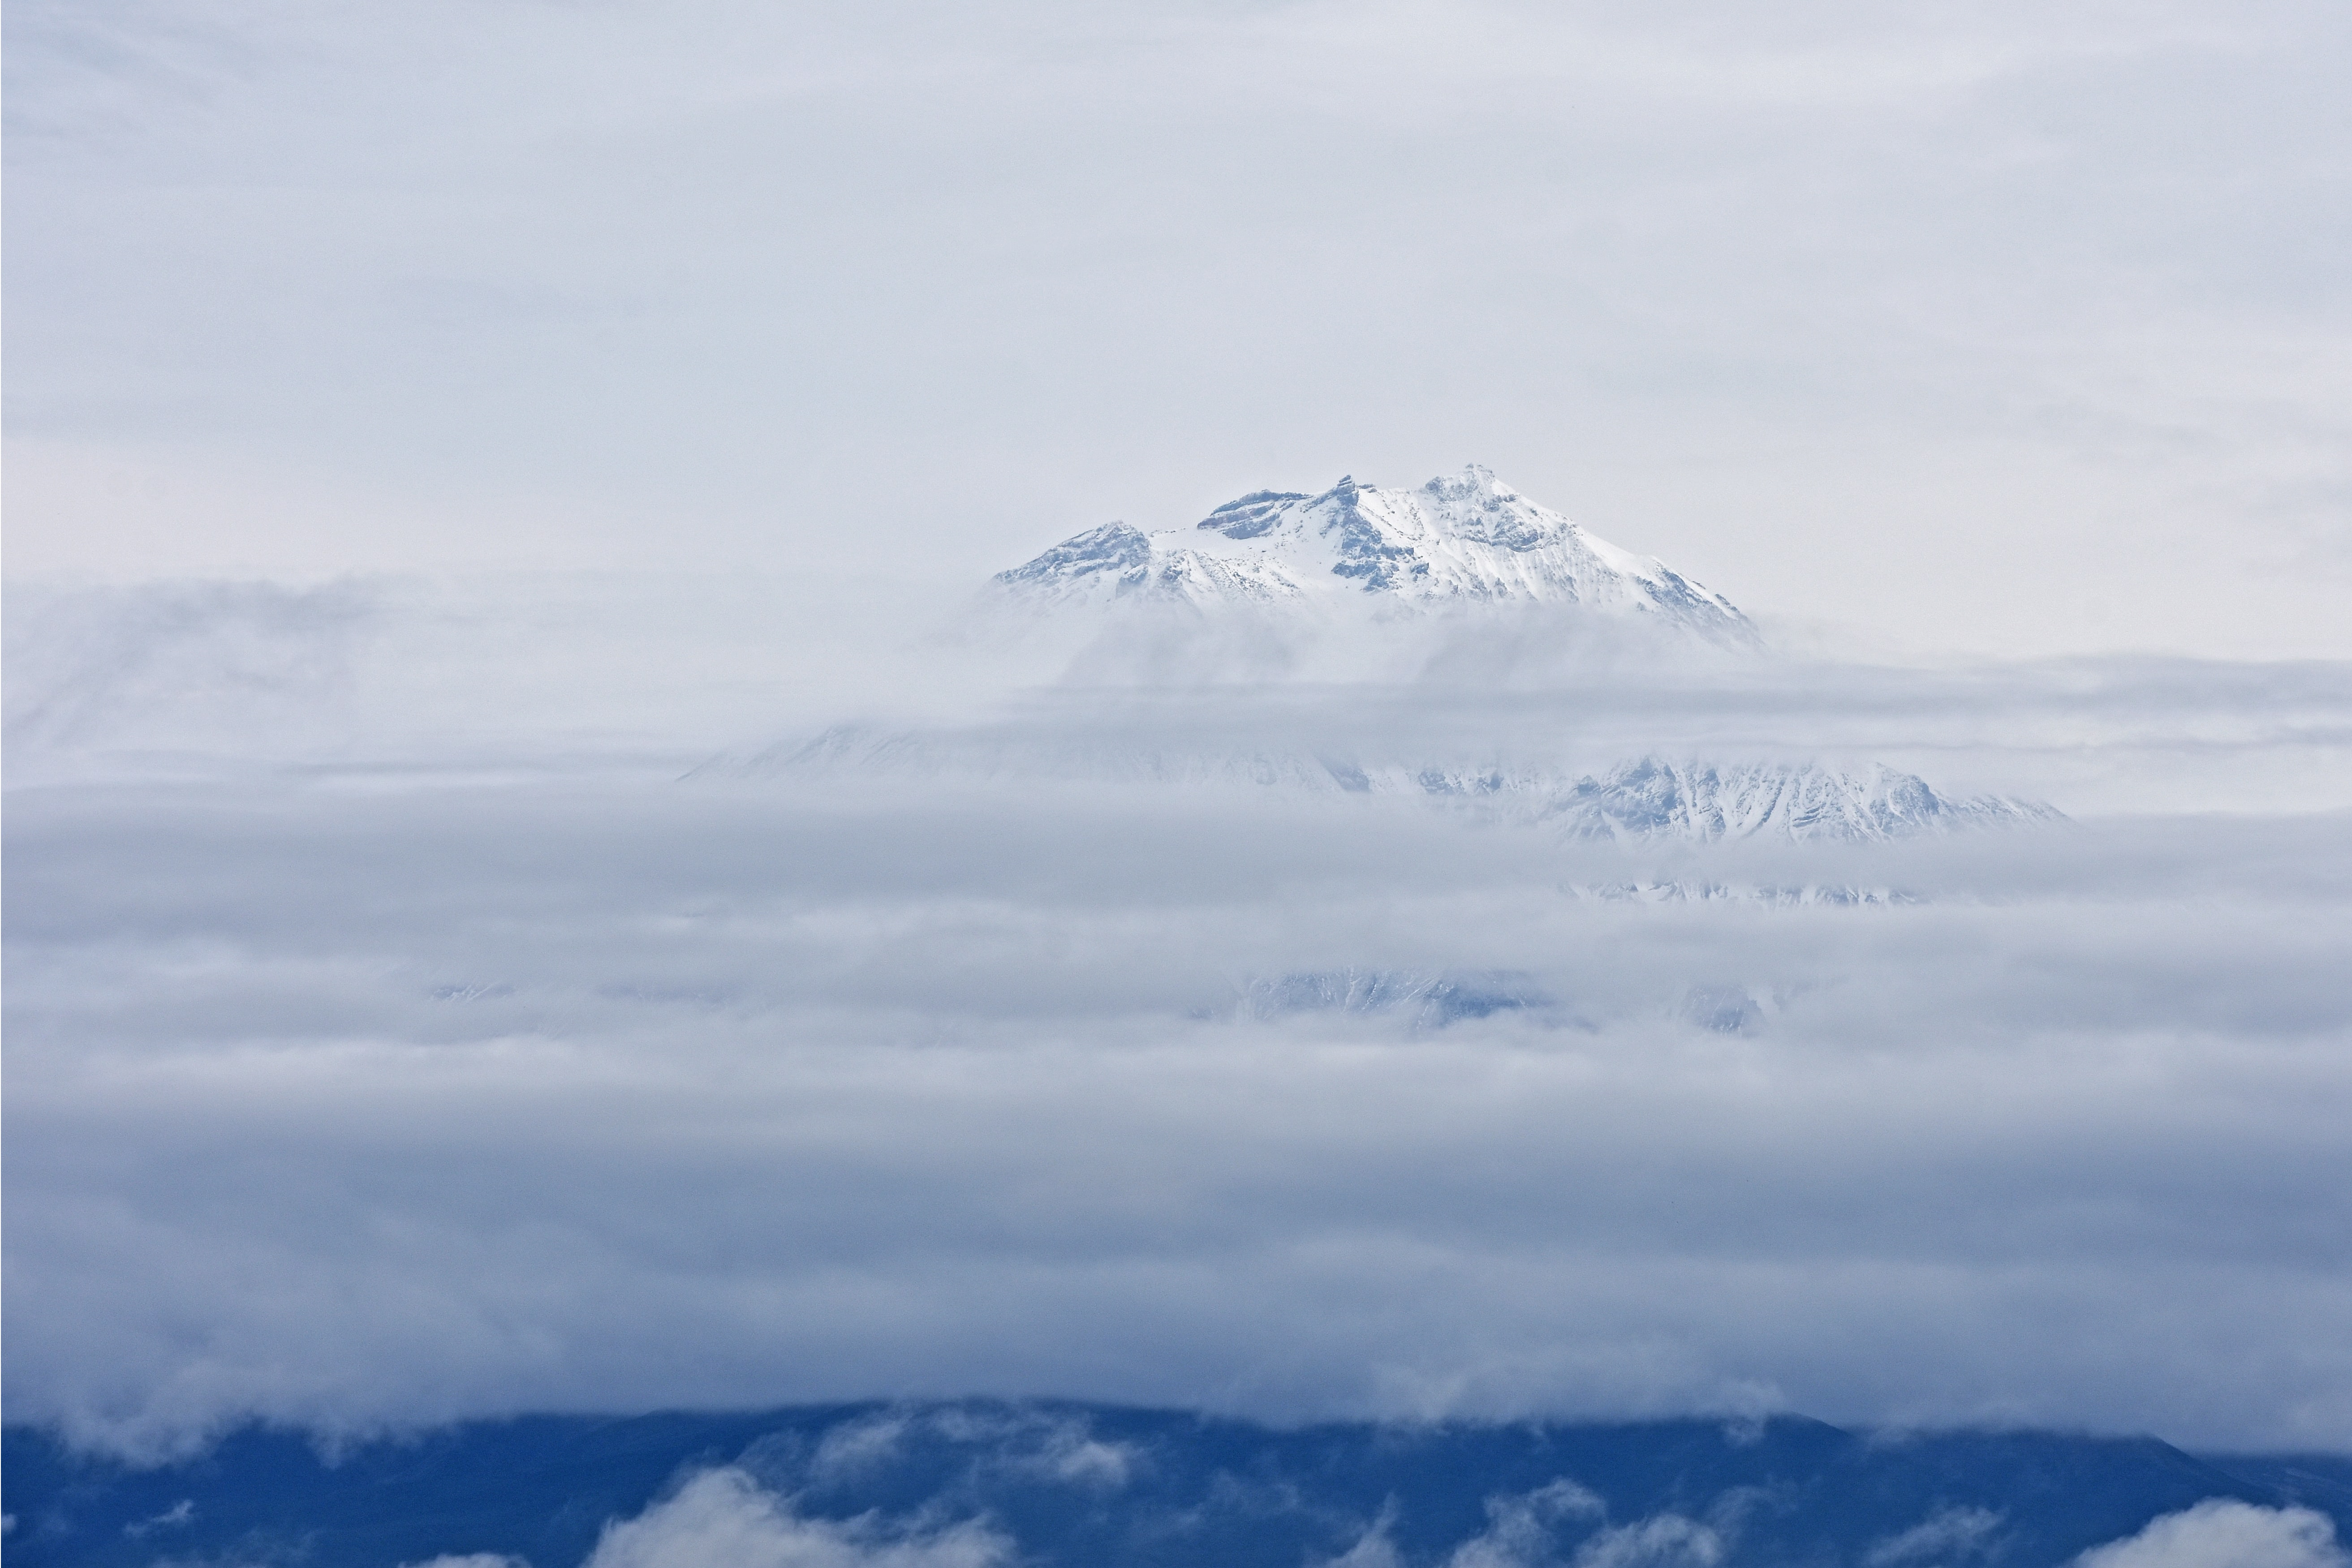 snow cap mountain surrounded by clouds at daytime